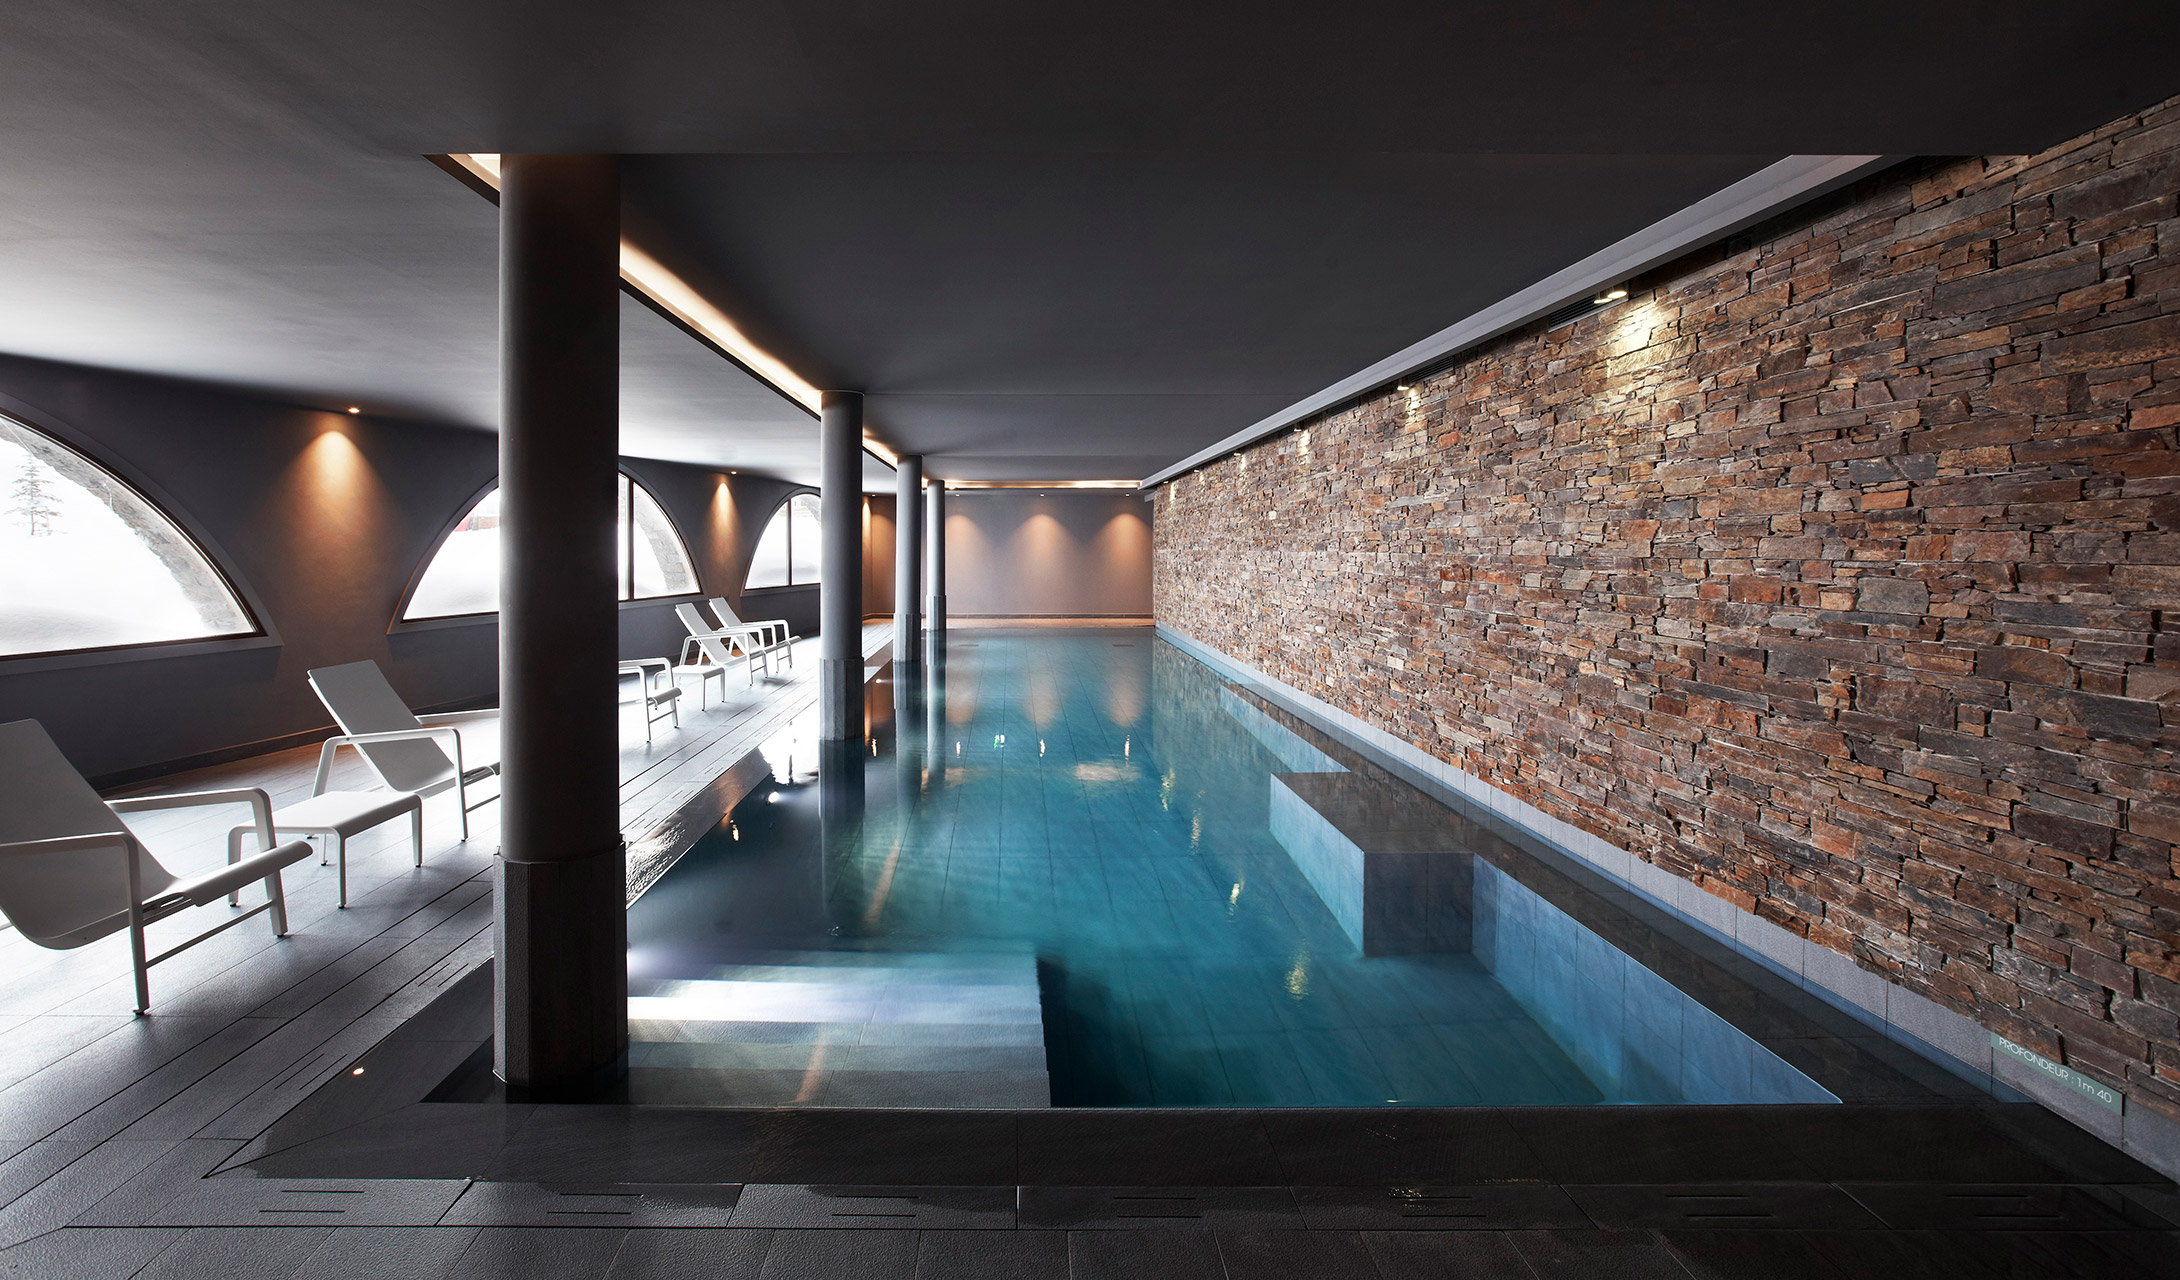 Le val thorens val thorens france design hotels for Hotel design france